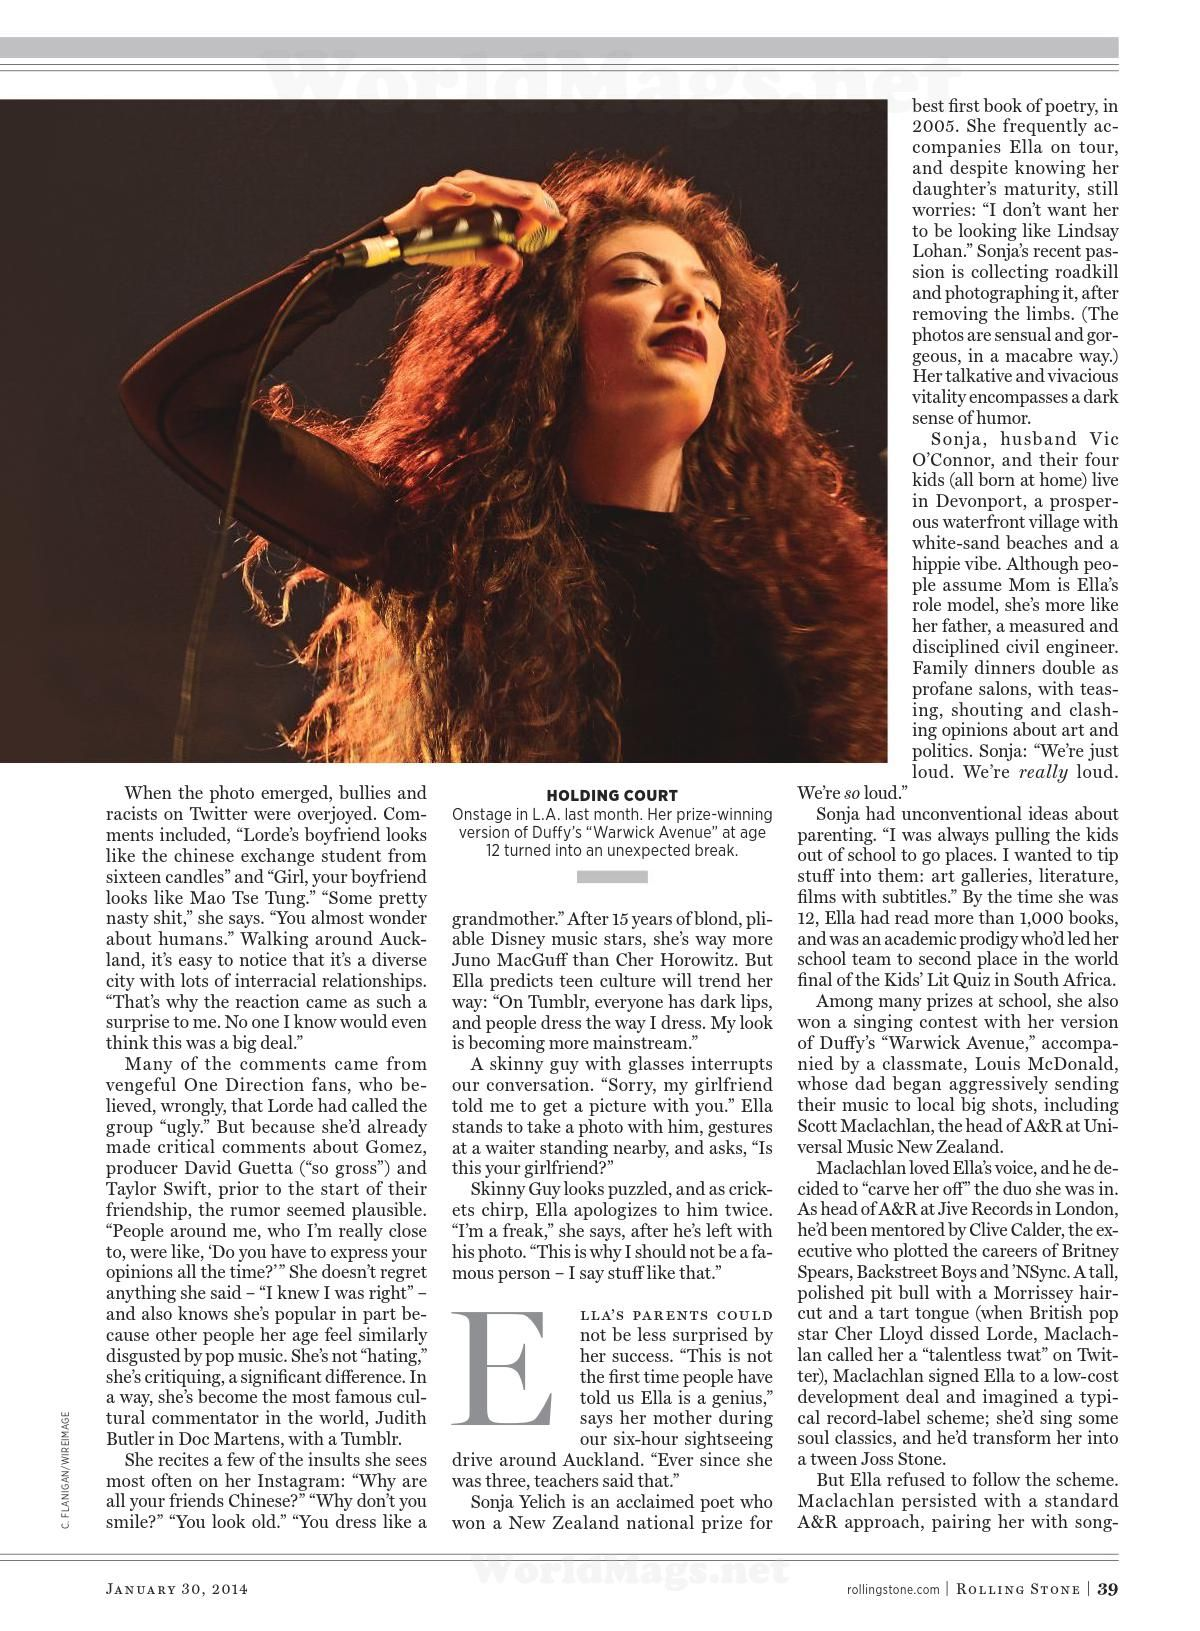 LORDE in Rolling Stone Magazine, January 2014 Issue